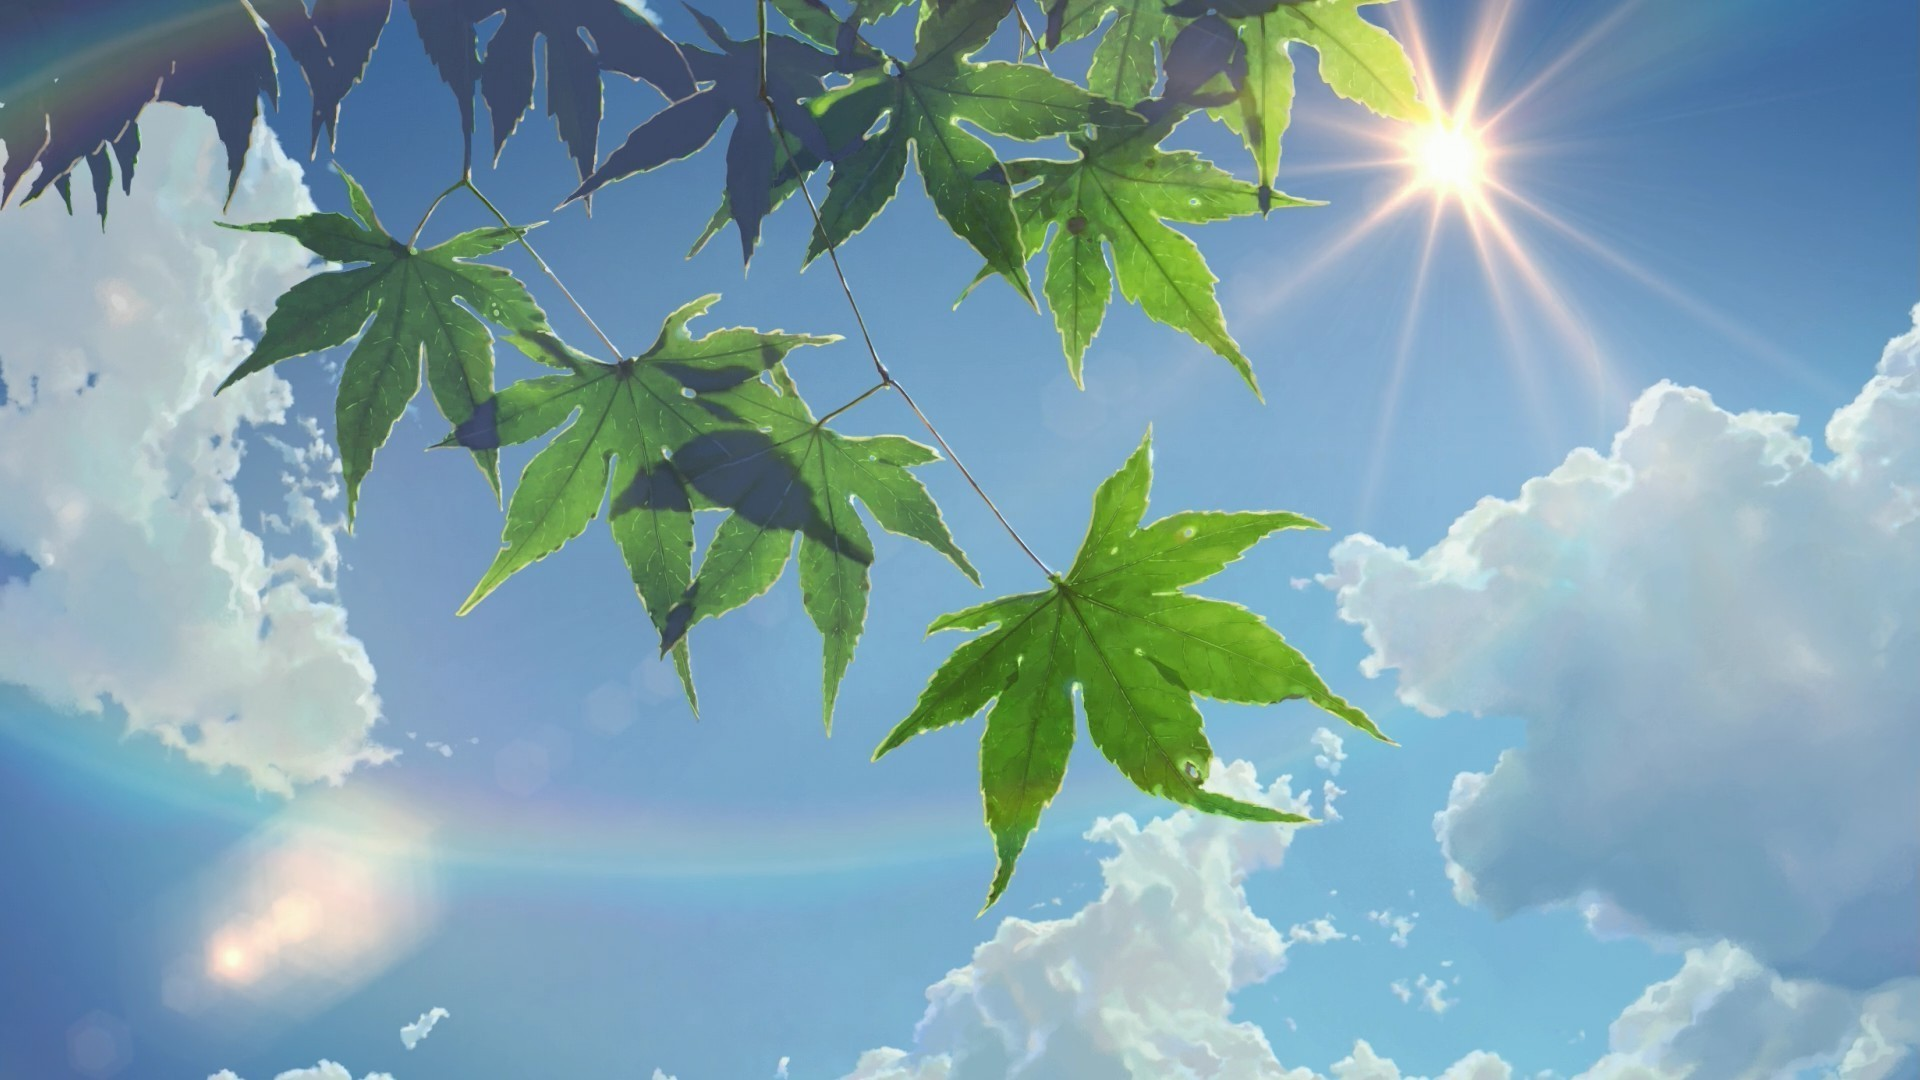 summer, Sunlight, Leaves, The Garden Of Words, Sun Rays, Clouds, Makoto  Shinkai Wallpapers HD / Desktop and Mobile Backgrounds